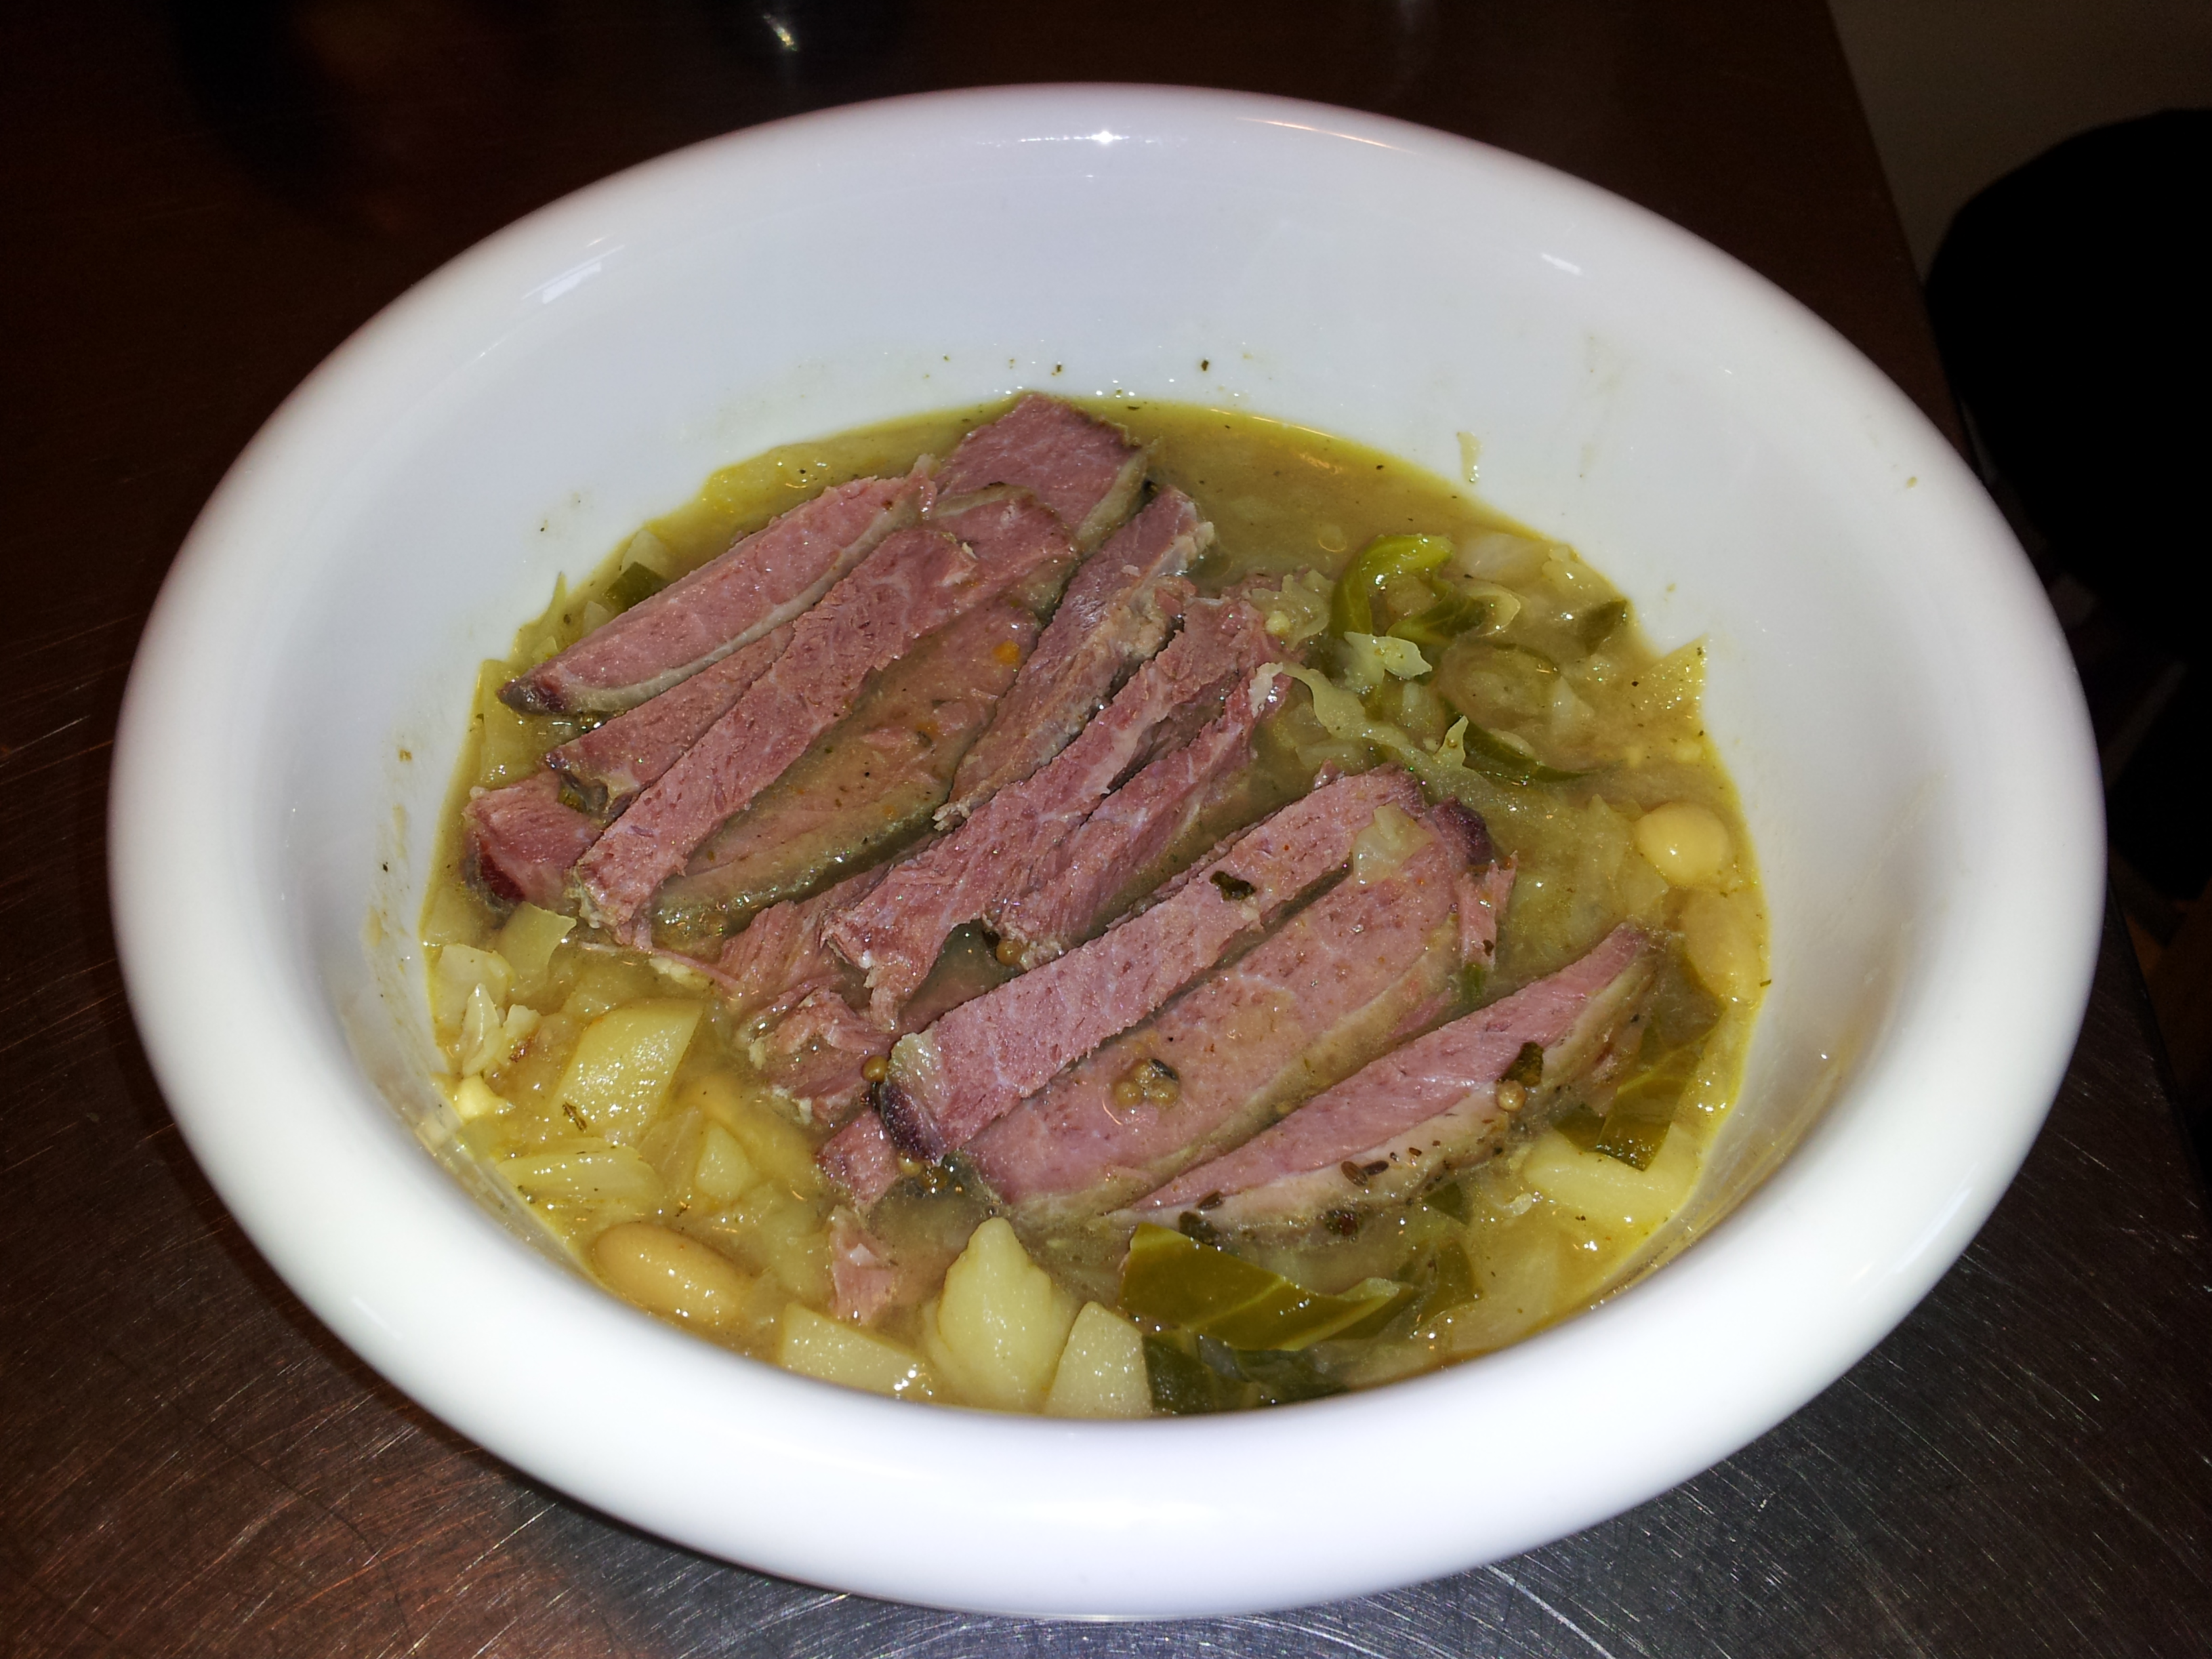 ... Course Soups, Stews and Chili Beans and Legumes Rustic Cabbage Soup